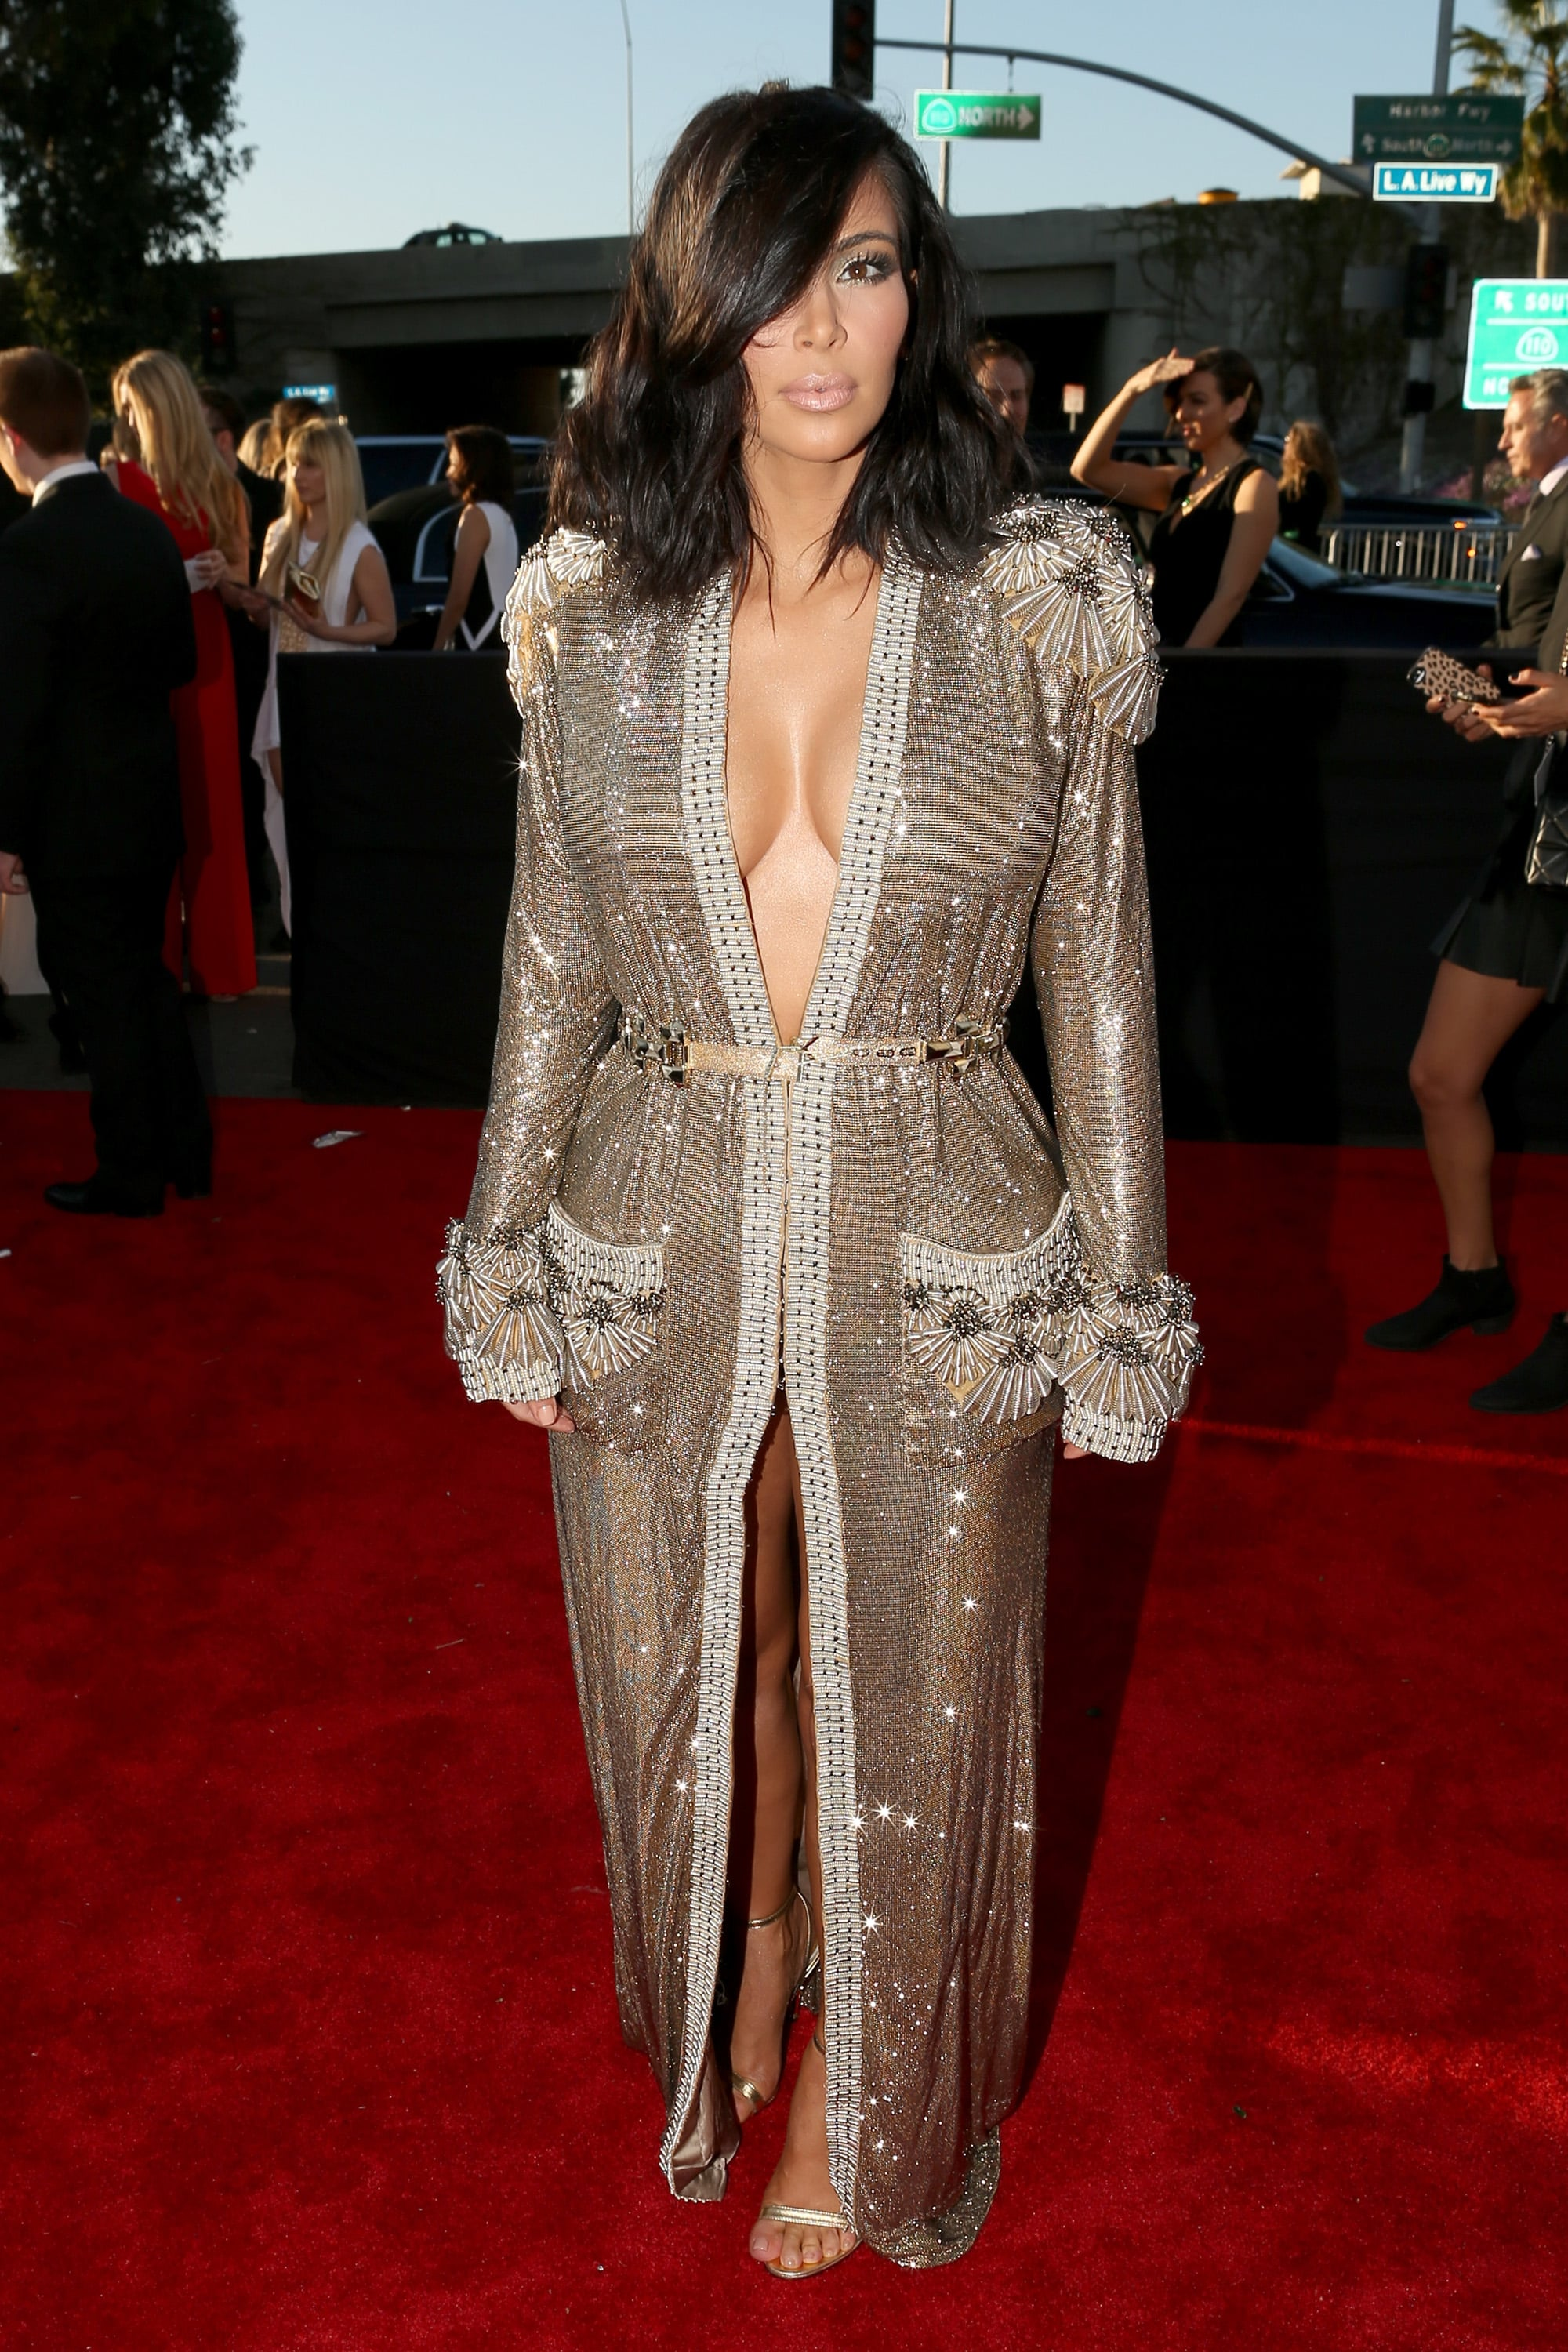 Kim Kardashian\'s Dress at the Grammy Awards 2015 | POPSUGAR Fashion